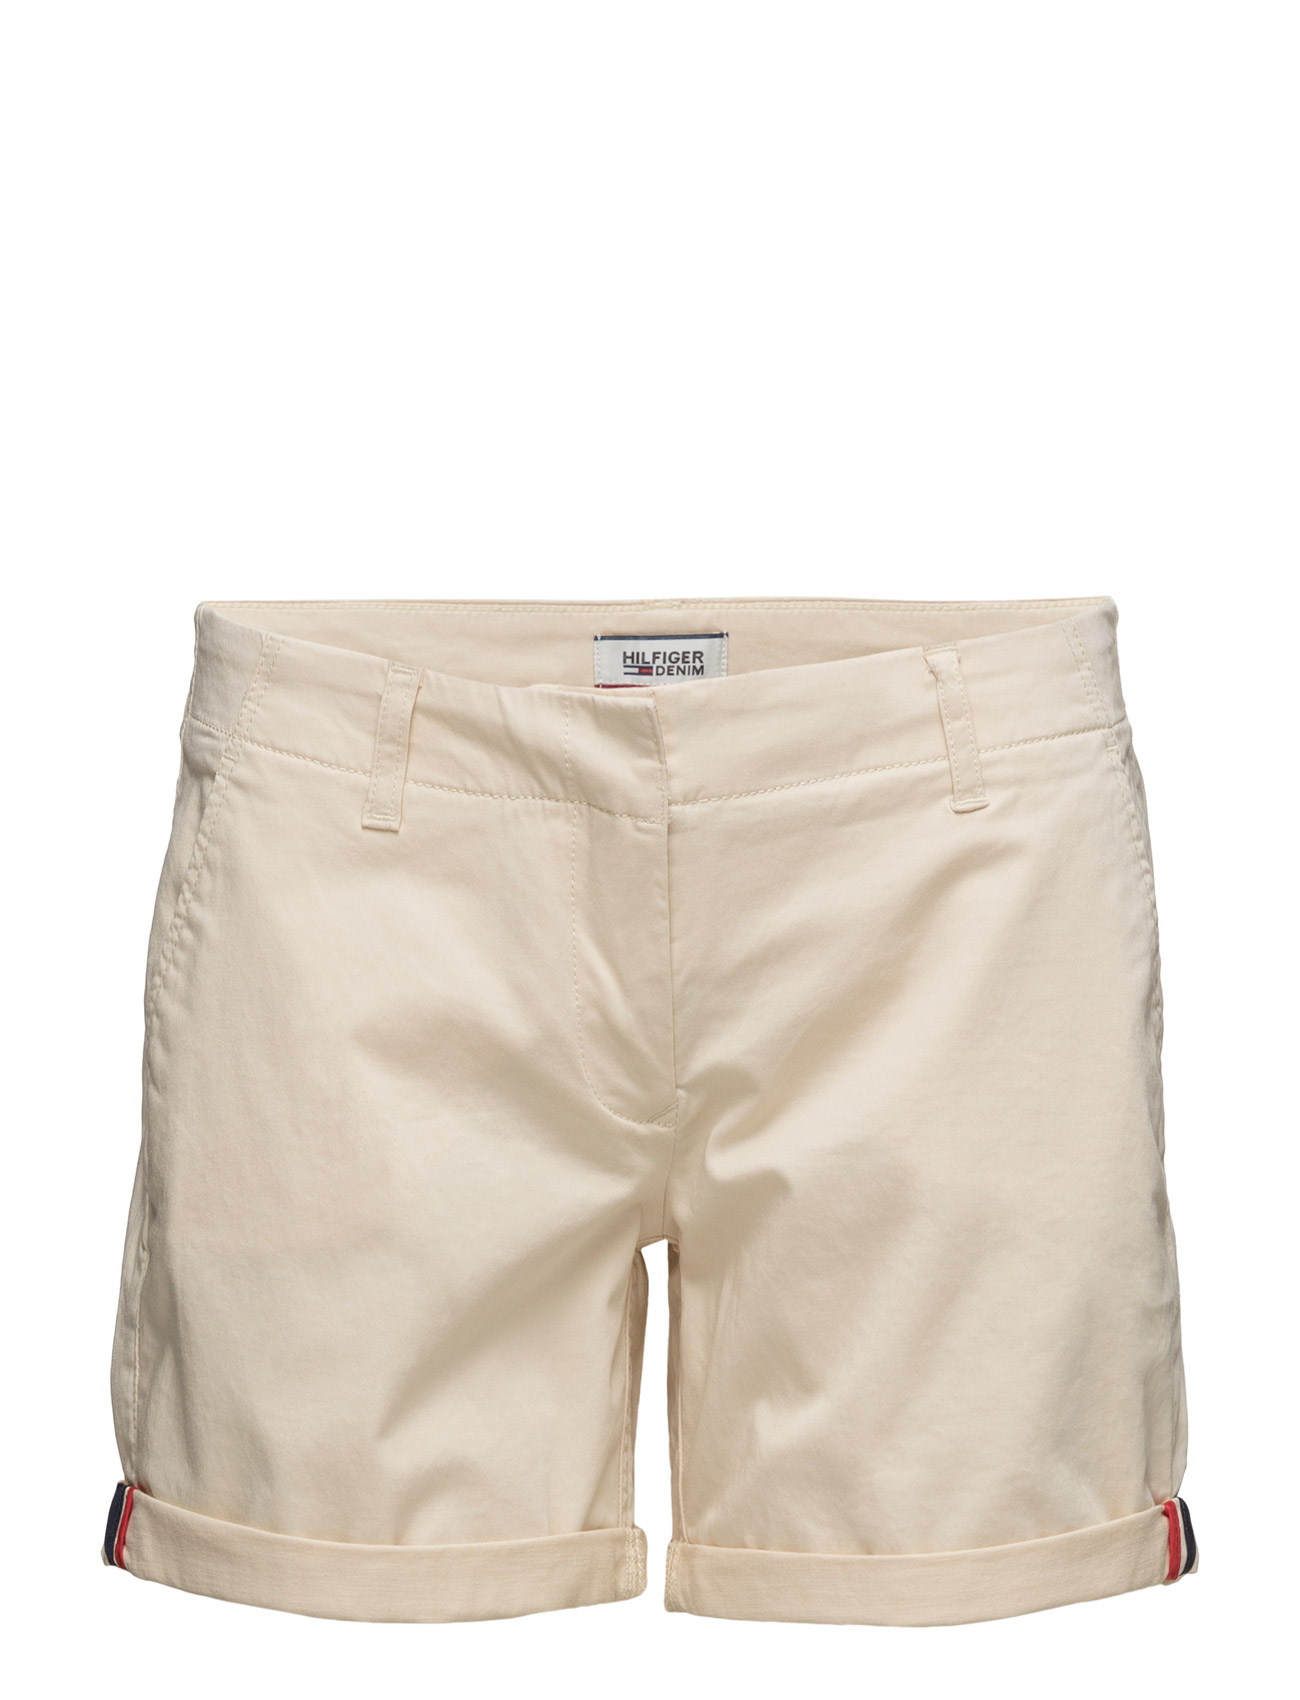 Thdw Basic Chino Shorts 23 thumbnail